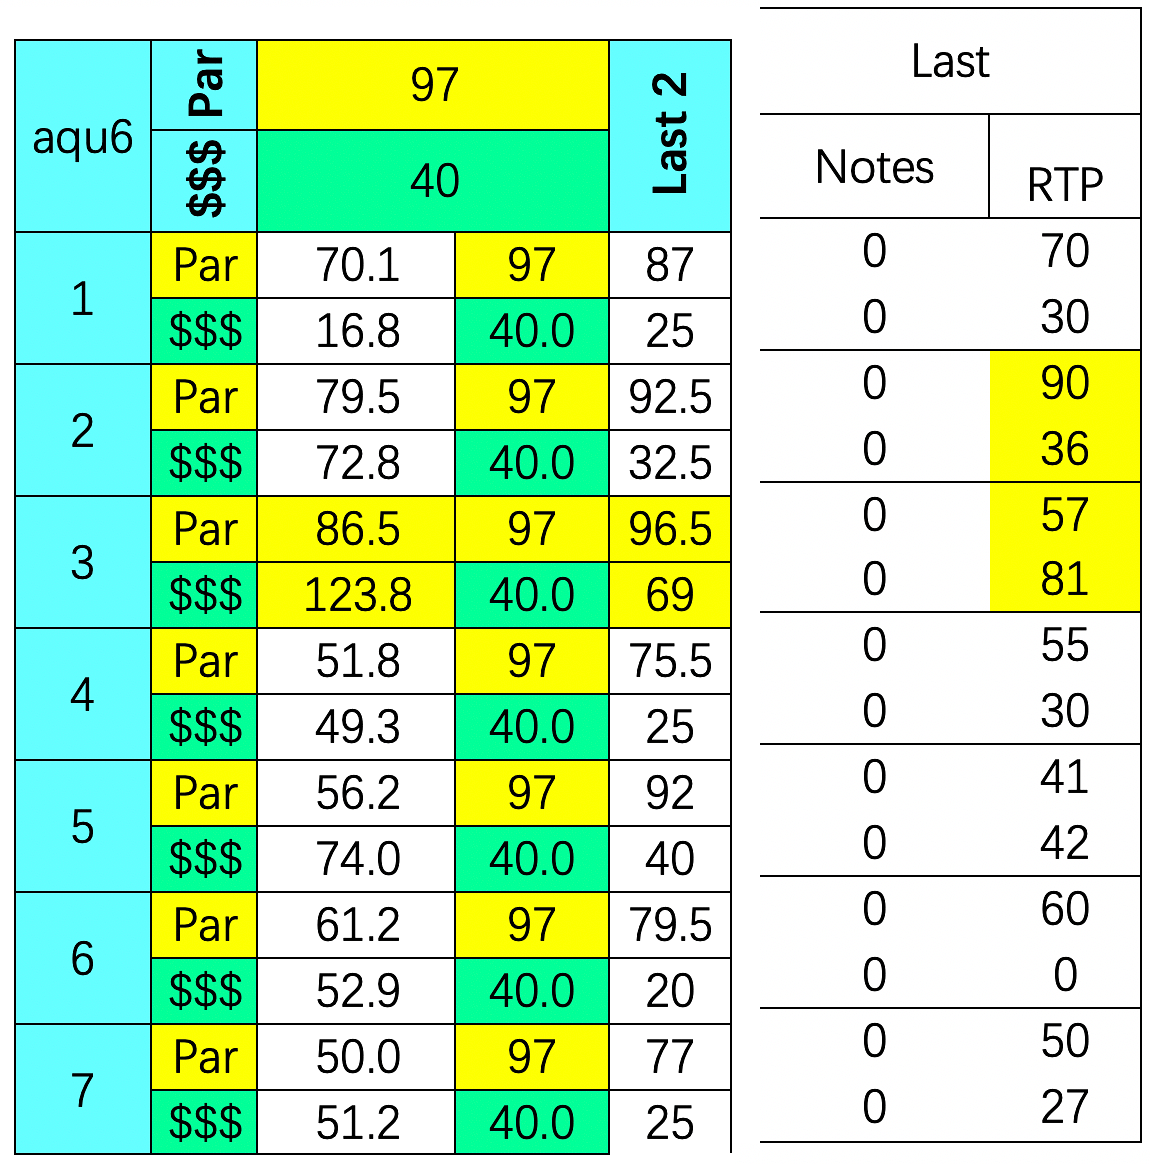 SmartCap analysis of the 6th race at Aqueduct